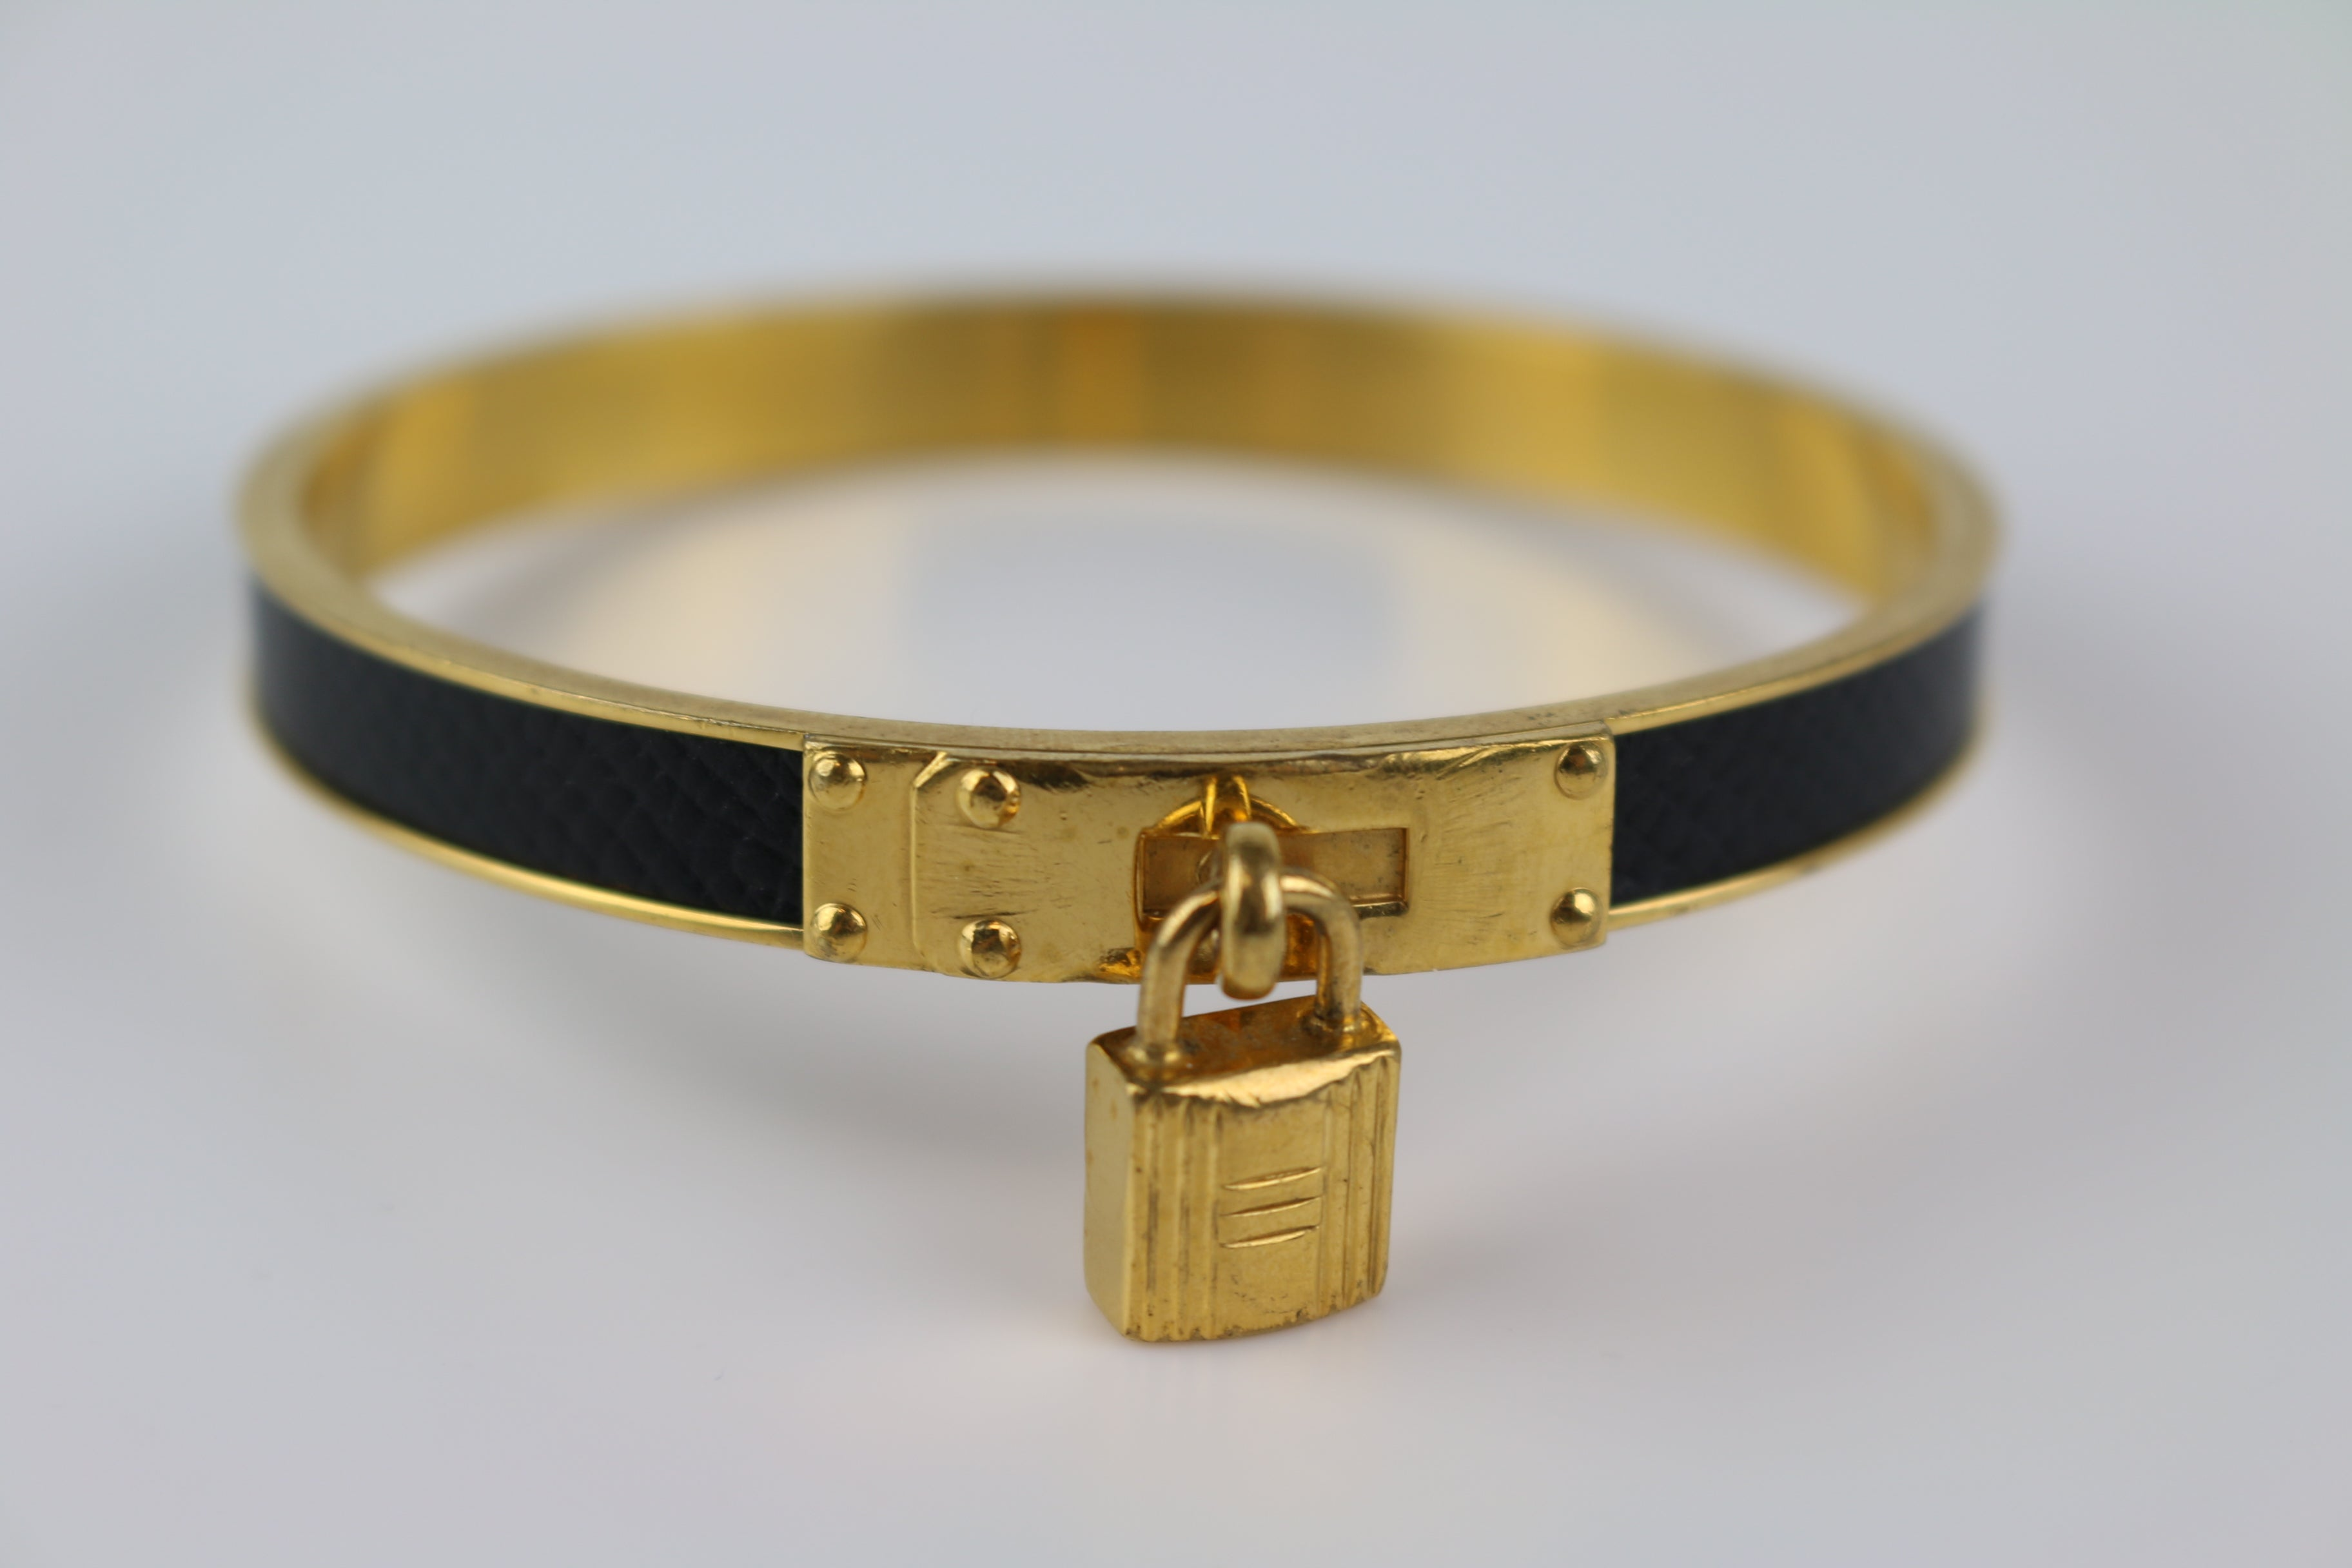 Vintage Gold/Black Leather Cadena Bangle